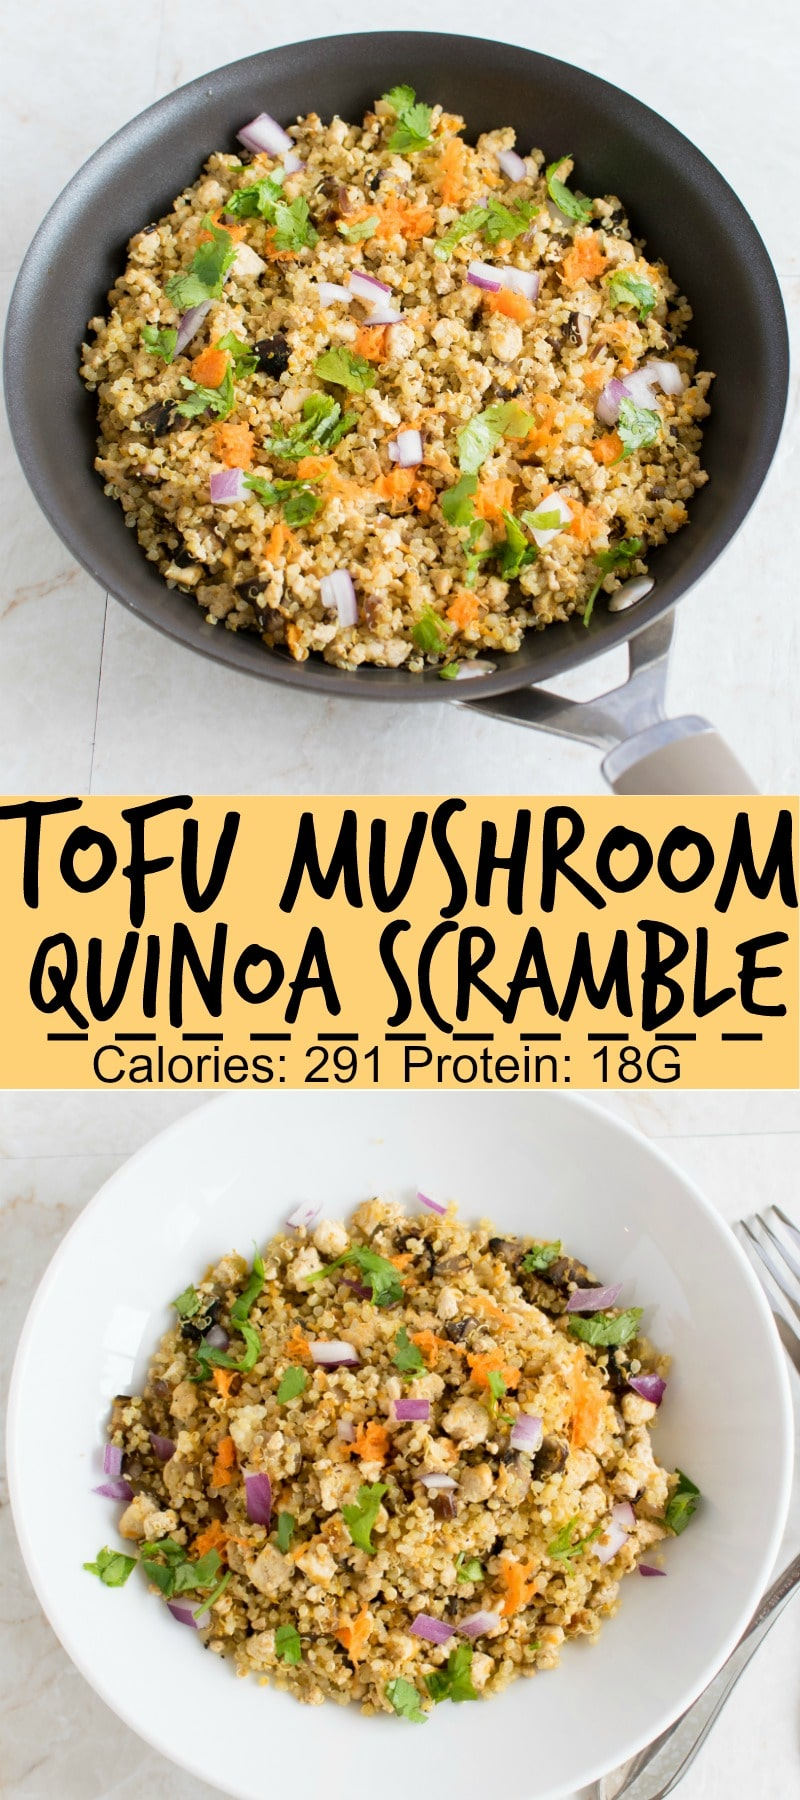 Tofu Mushroom Quinoa Scramble is a healthy, protein rich, nutritious vegan and glutenfree lunch option for the days when you don't want to eat salads | kiipfit.com